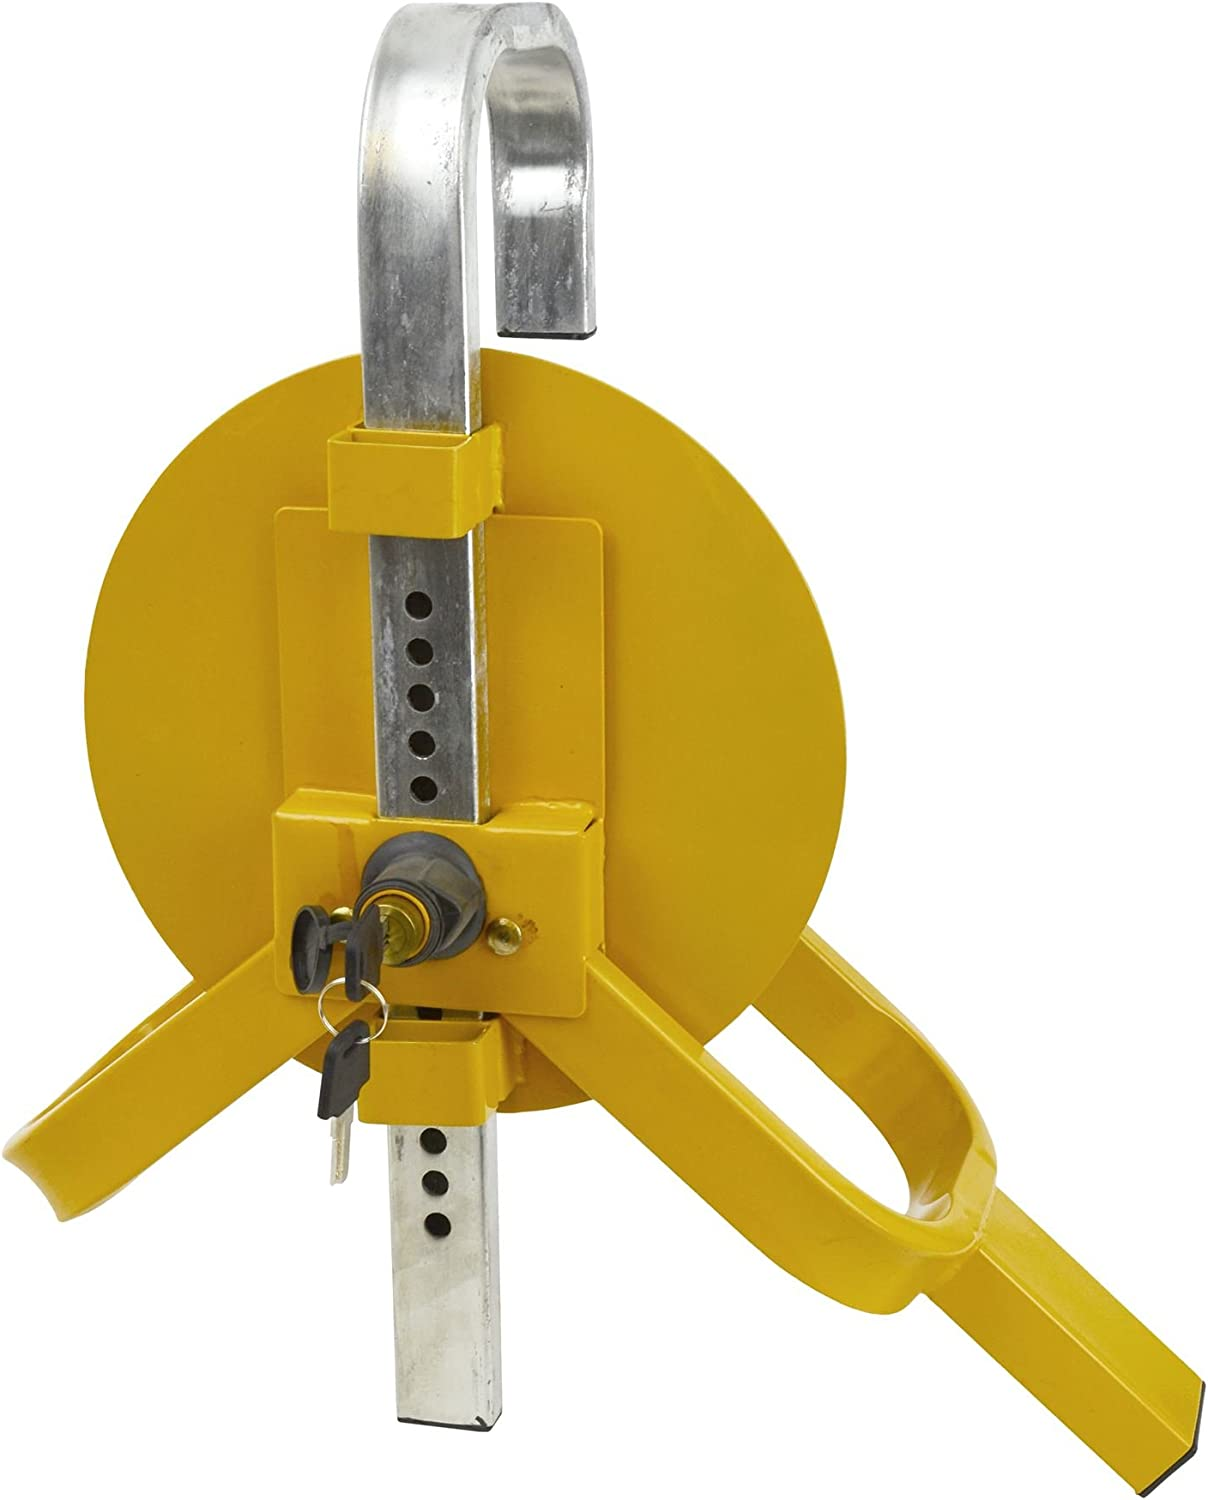 AB Tools Caravan//Trailer 10-14 Stronghold Wheel Clamp TR107